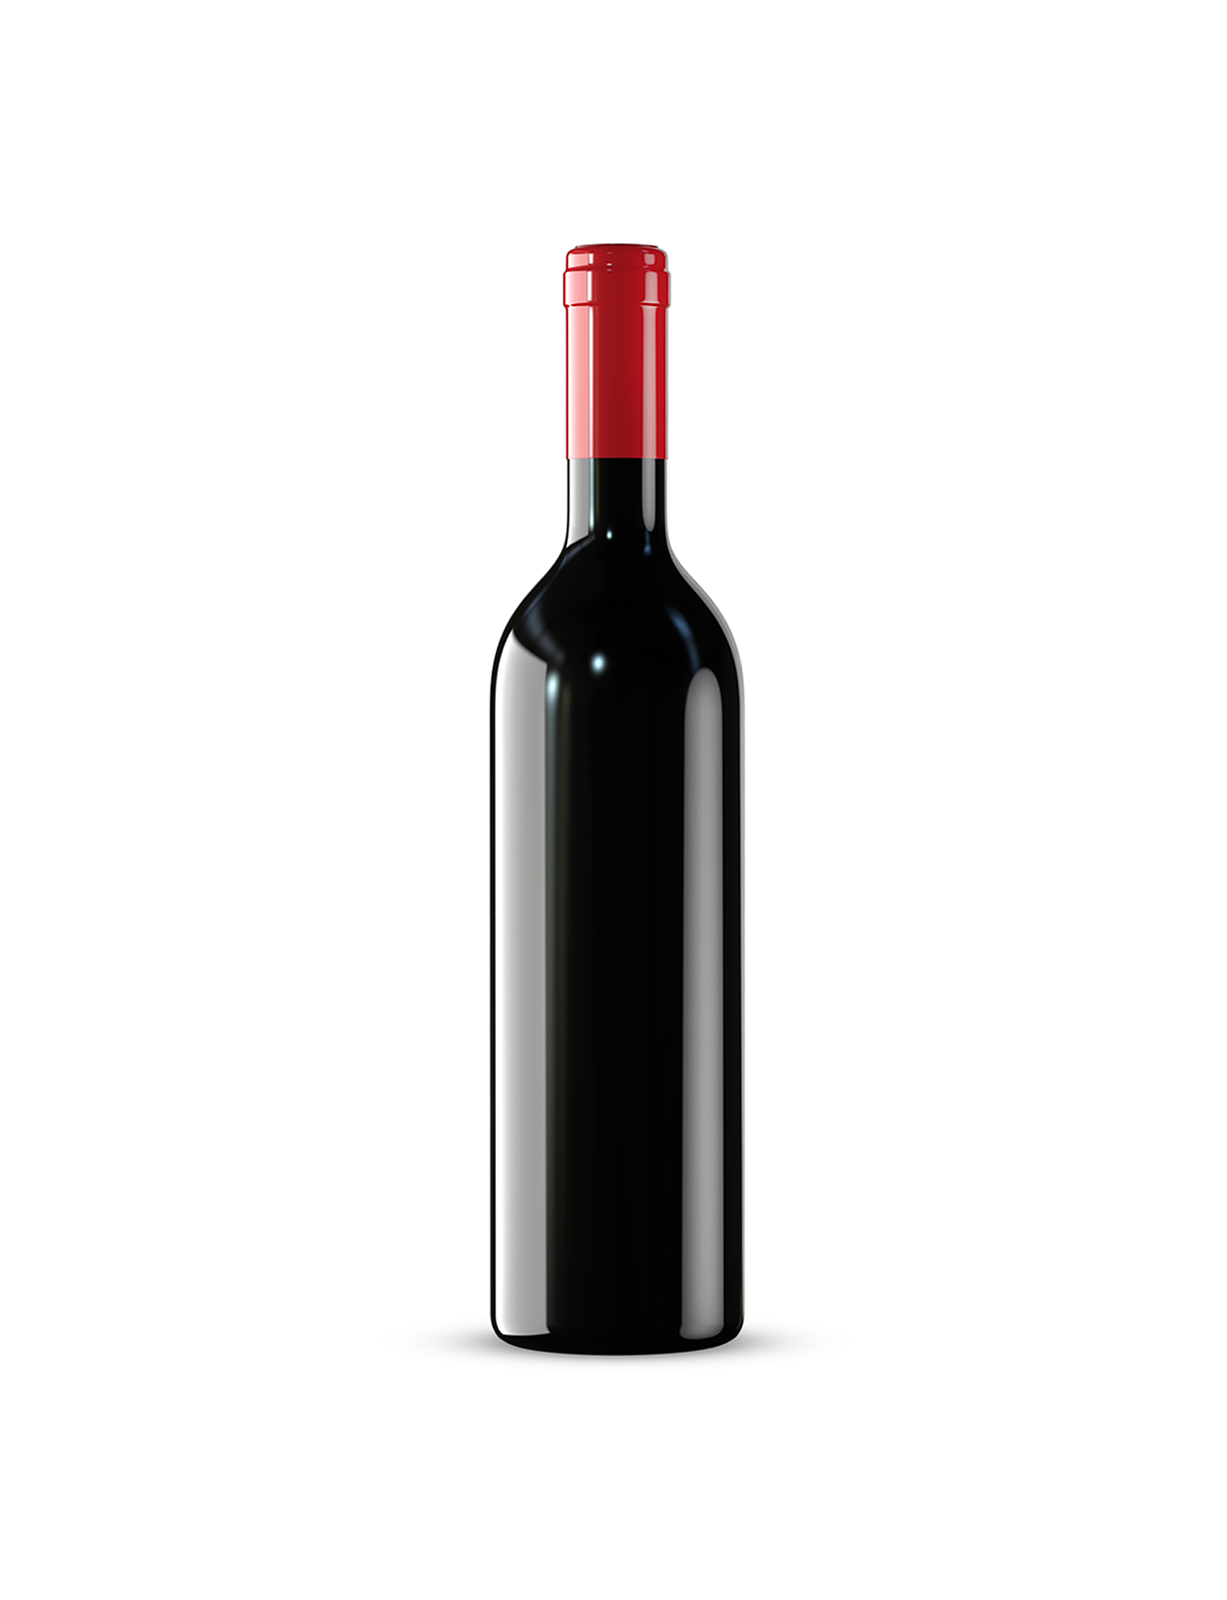 Haut Bages Liberal 2016 1500ml